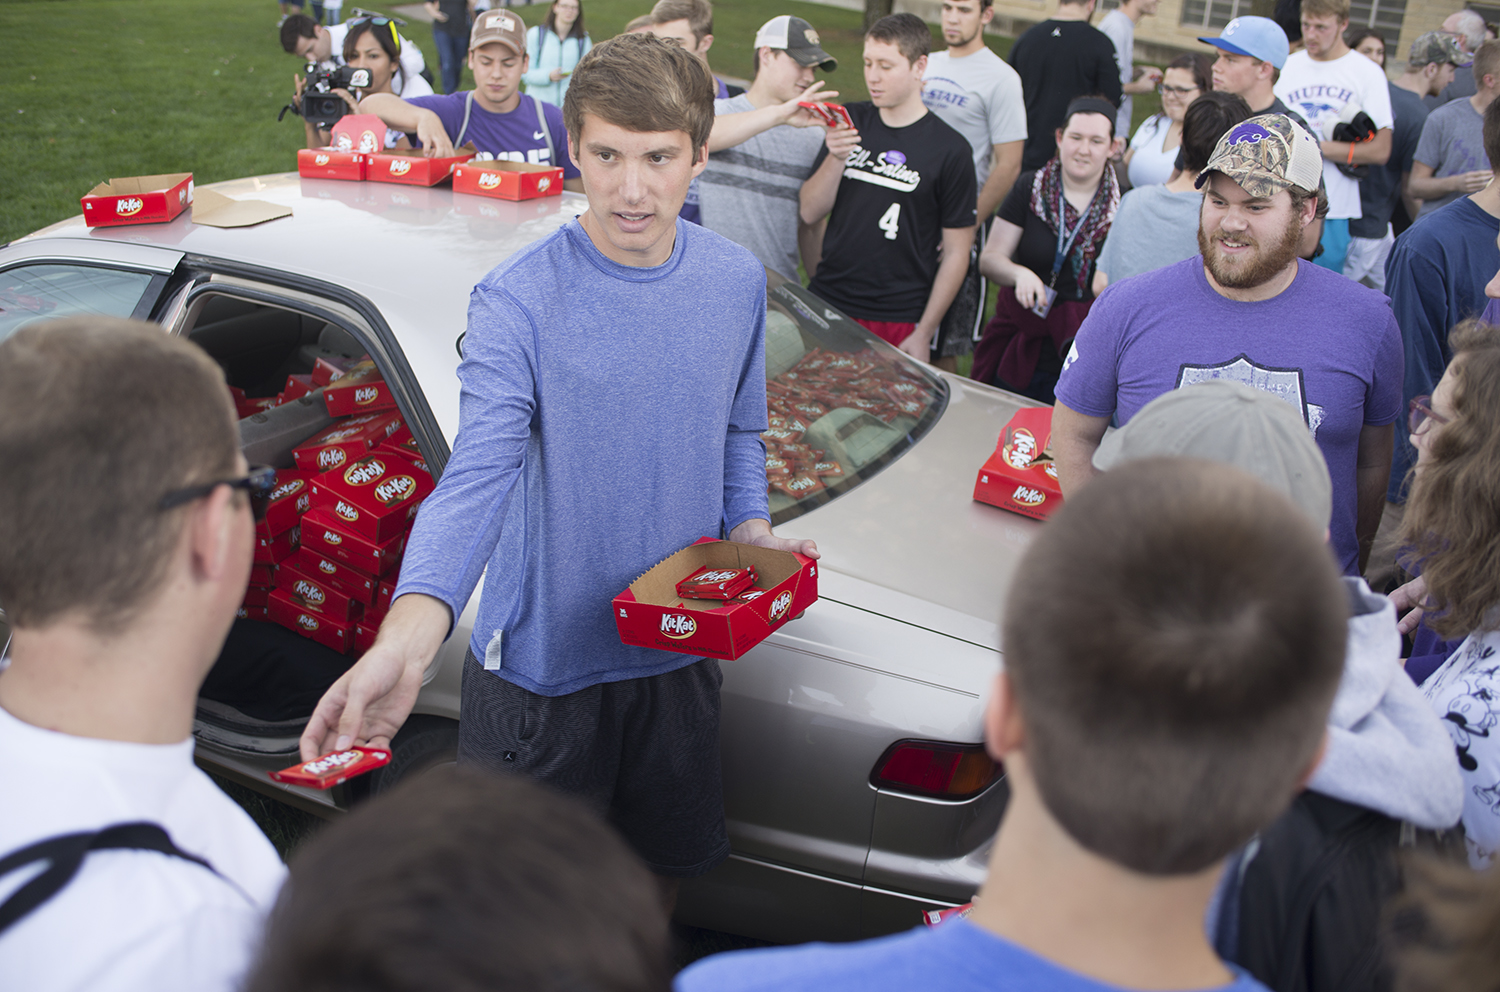 Student's vehicle filled with thousands of Kit Kats